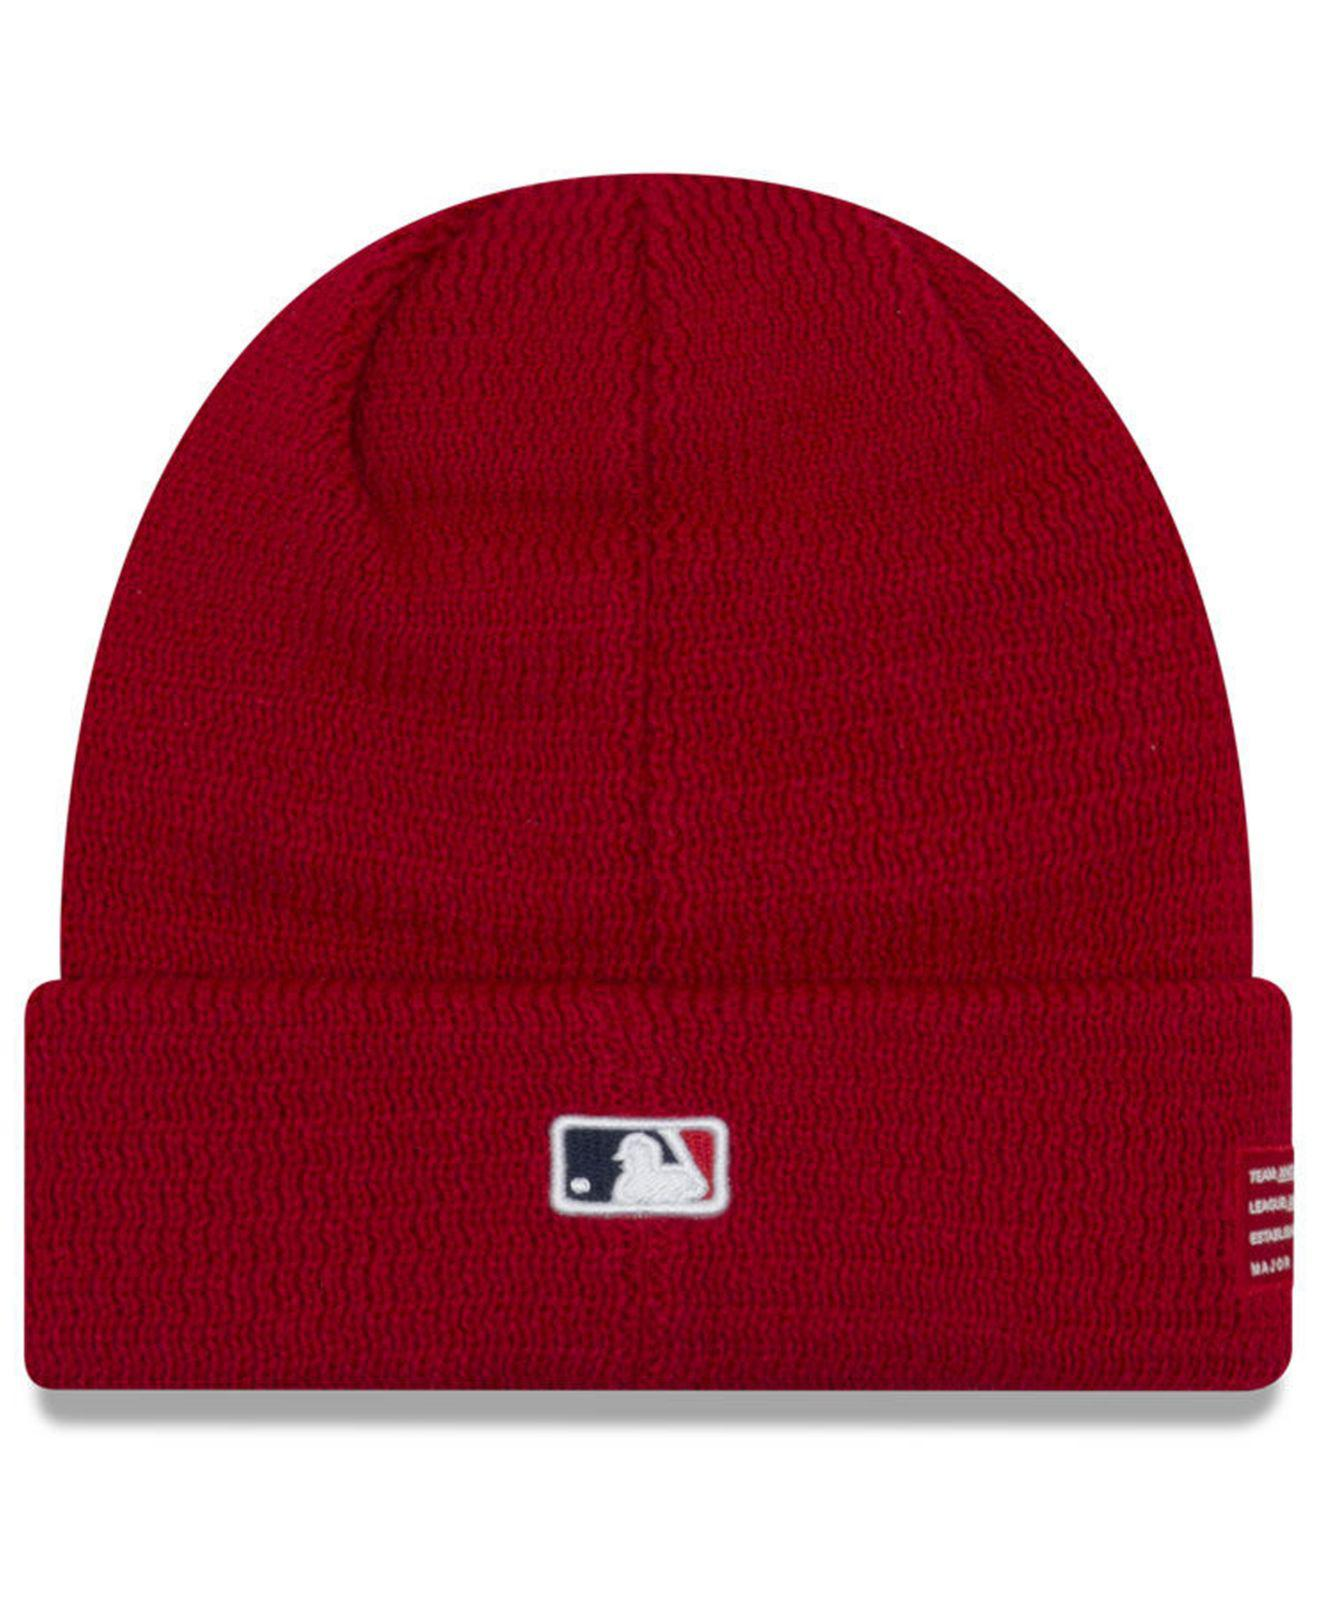 wholesale dealer 095f2 7160a ... italy lyst ktz los angeles angels sport knit hat in red for men 2394e  23077